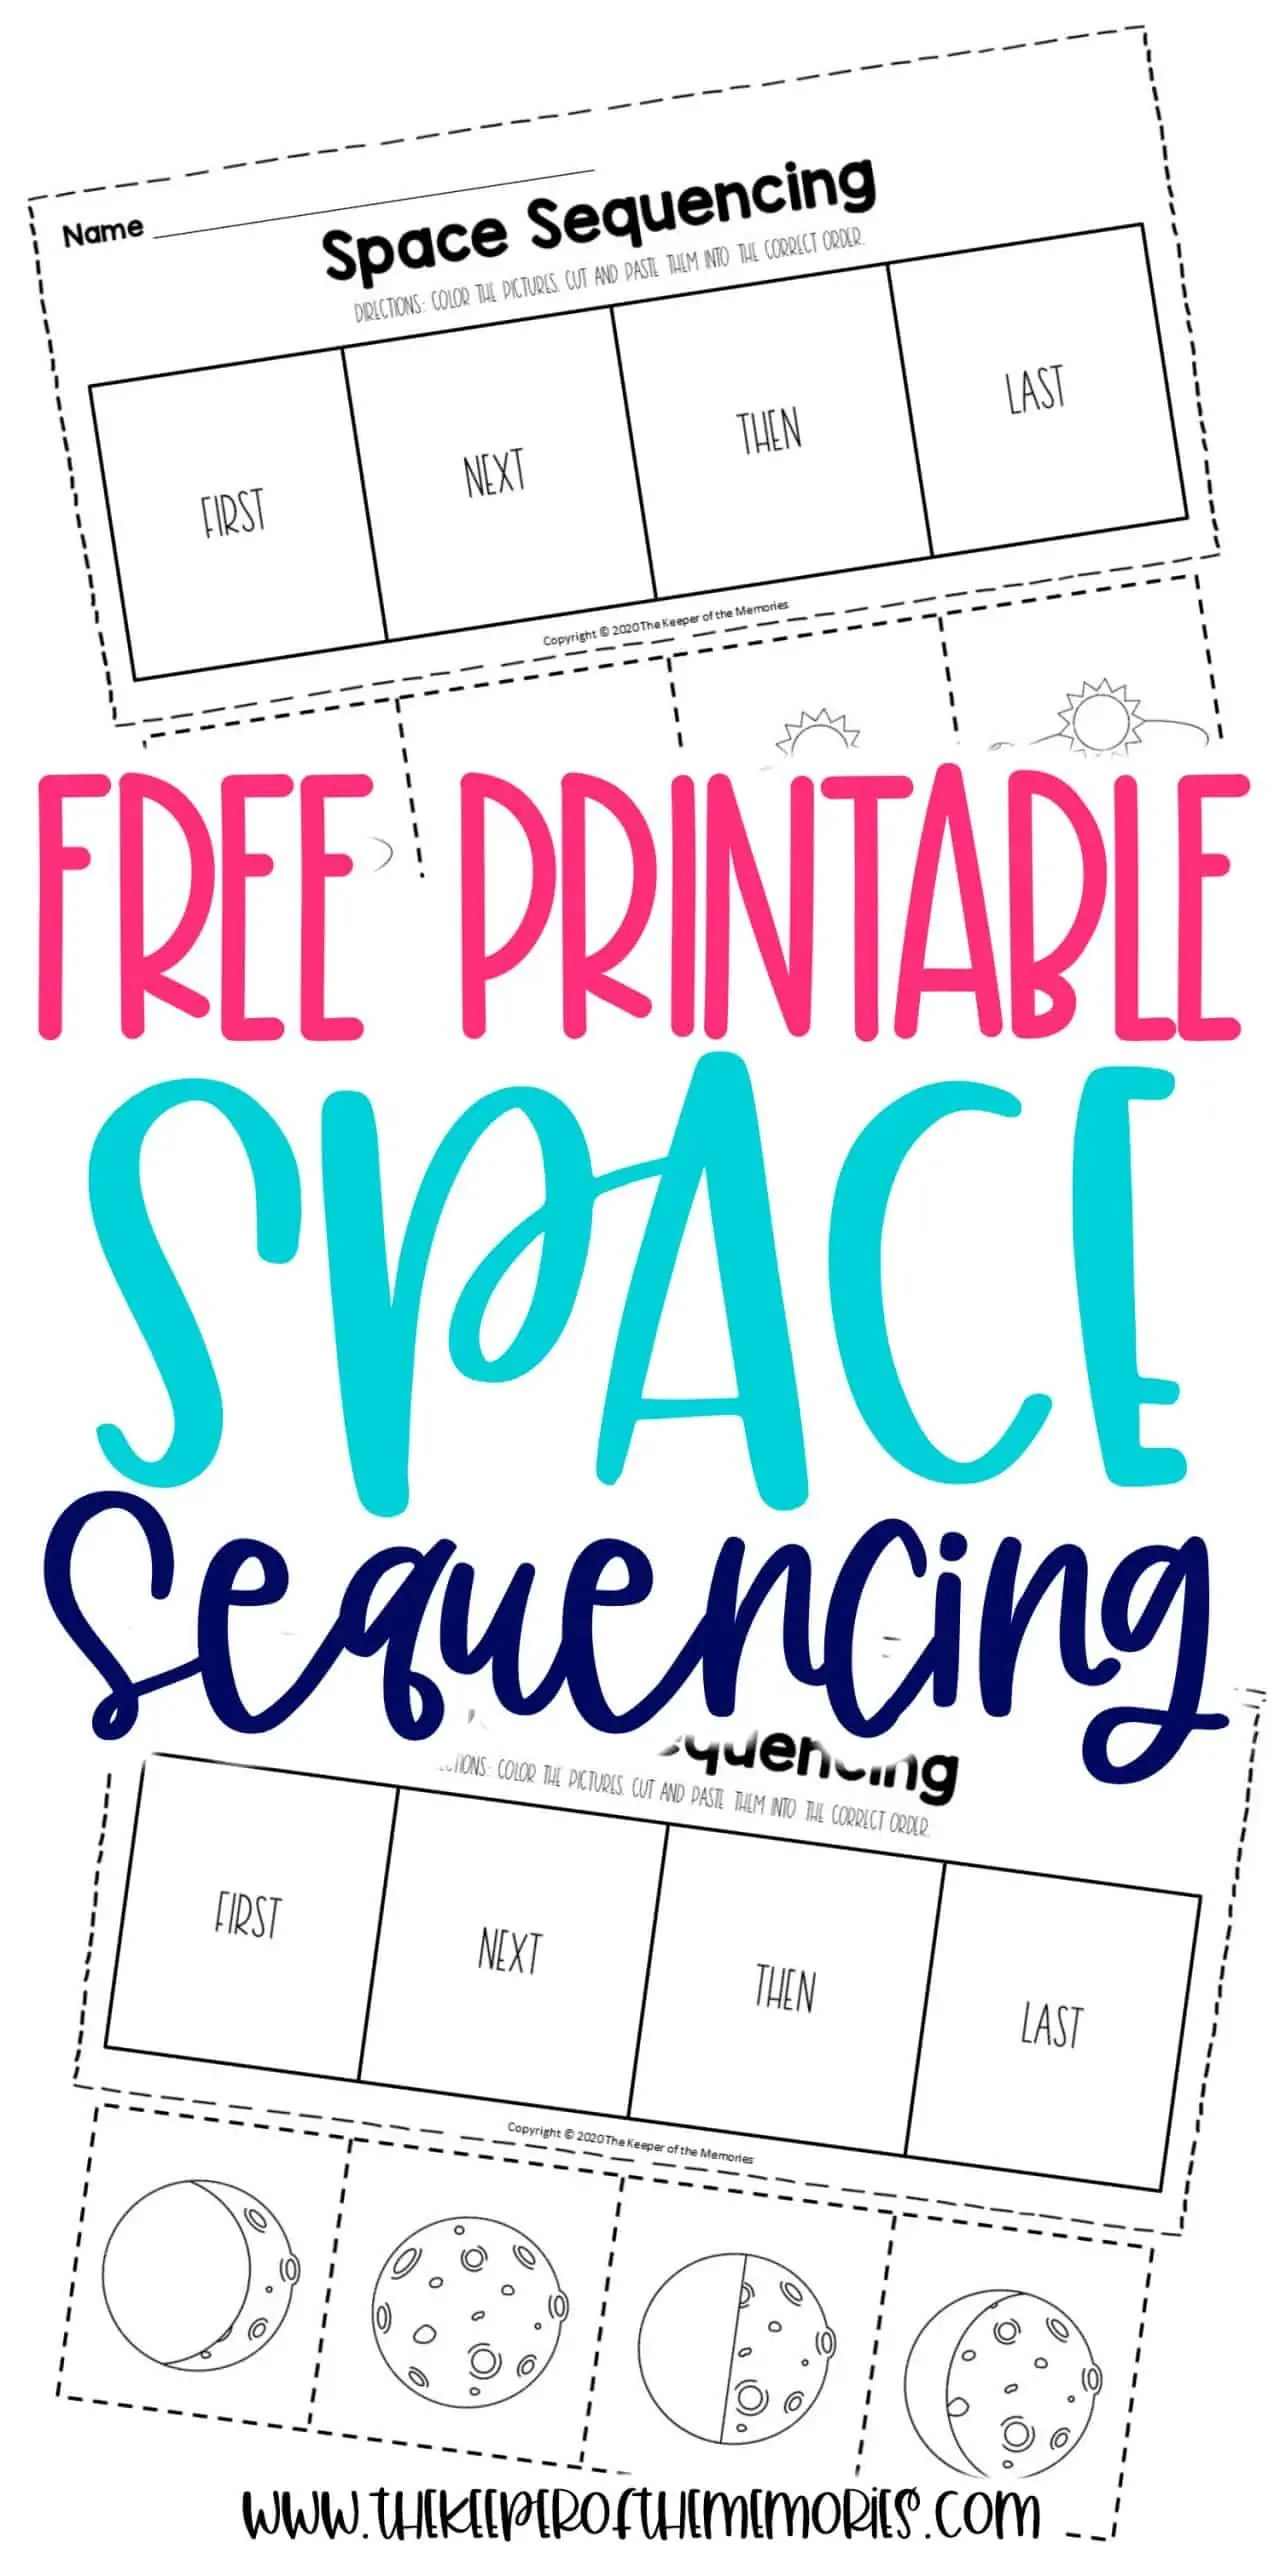 Free Story Sequencing Worksheets For Preschoolers